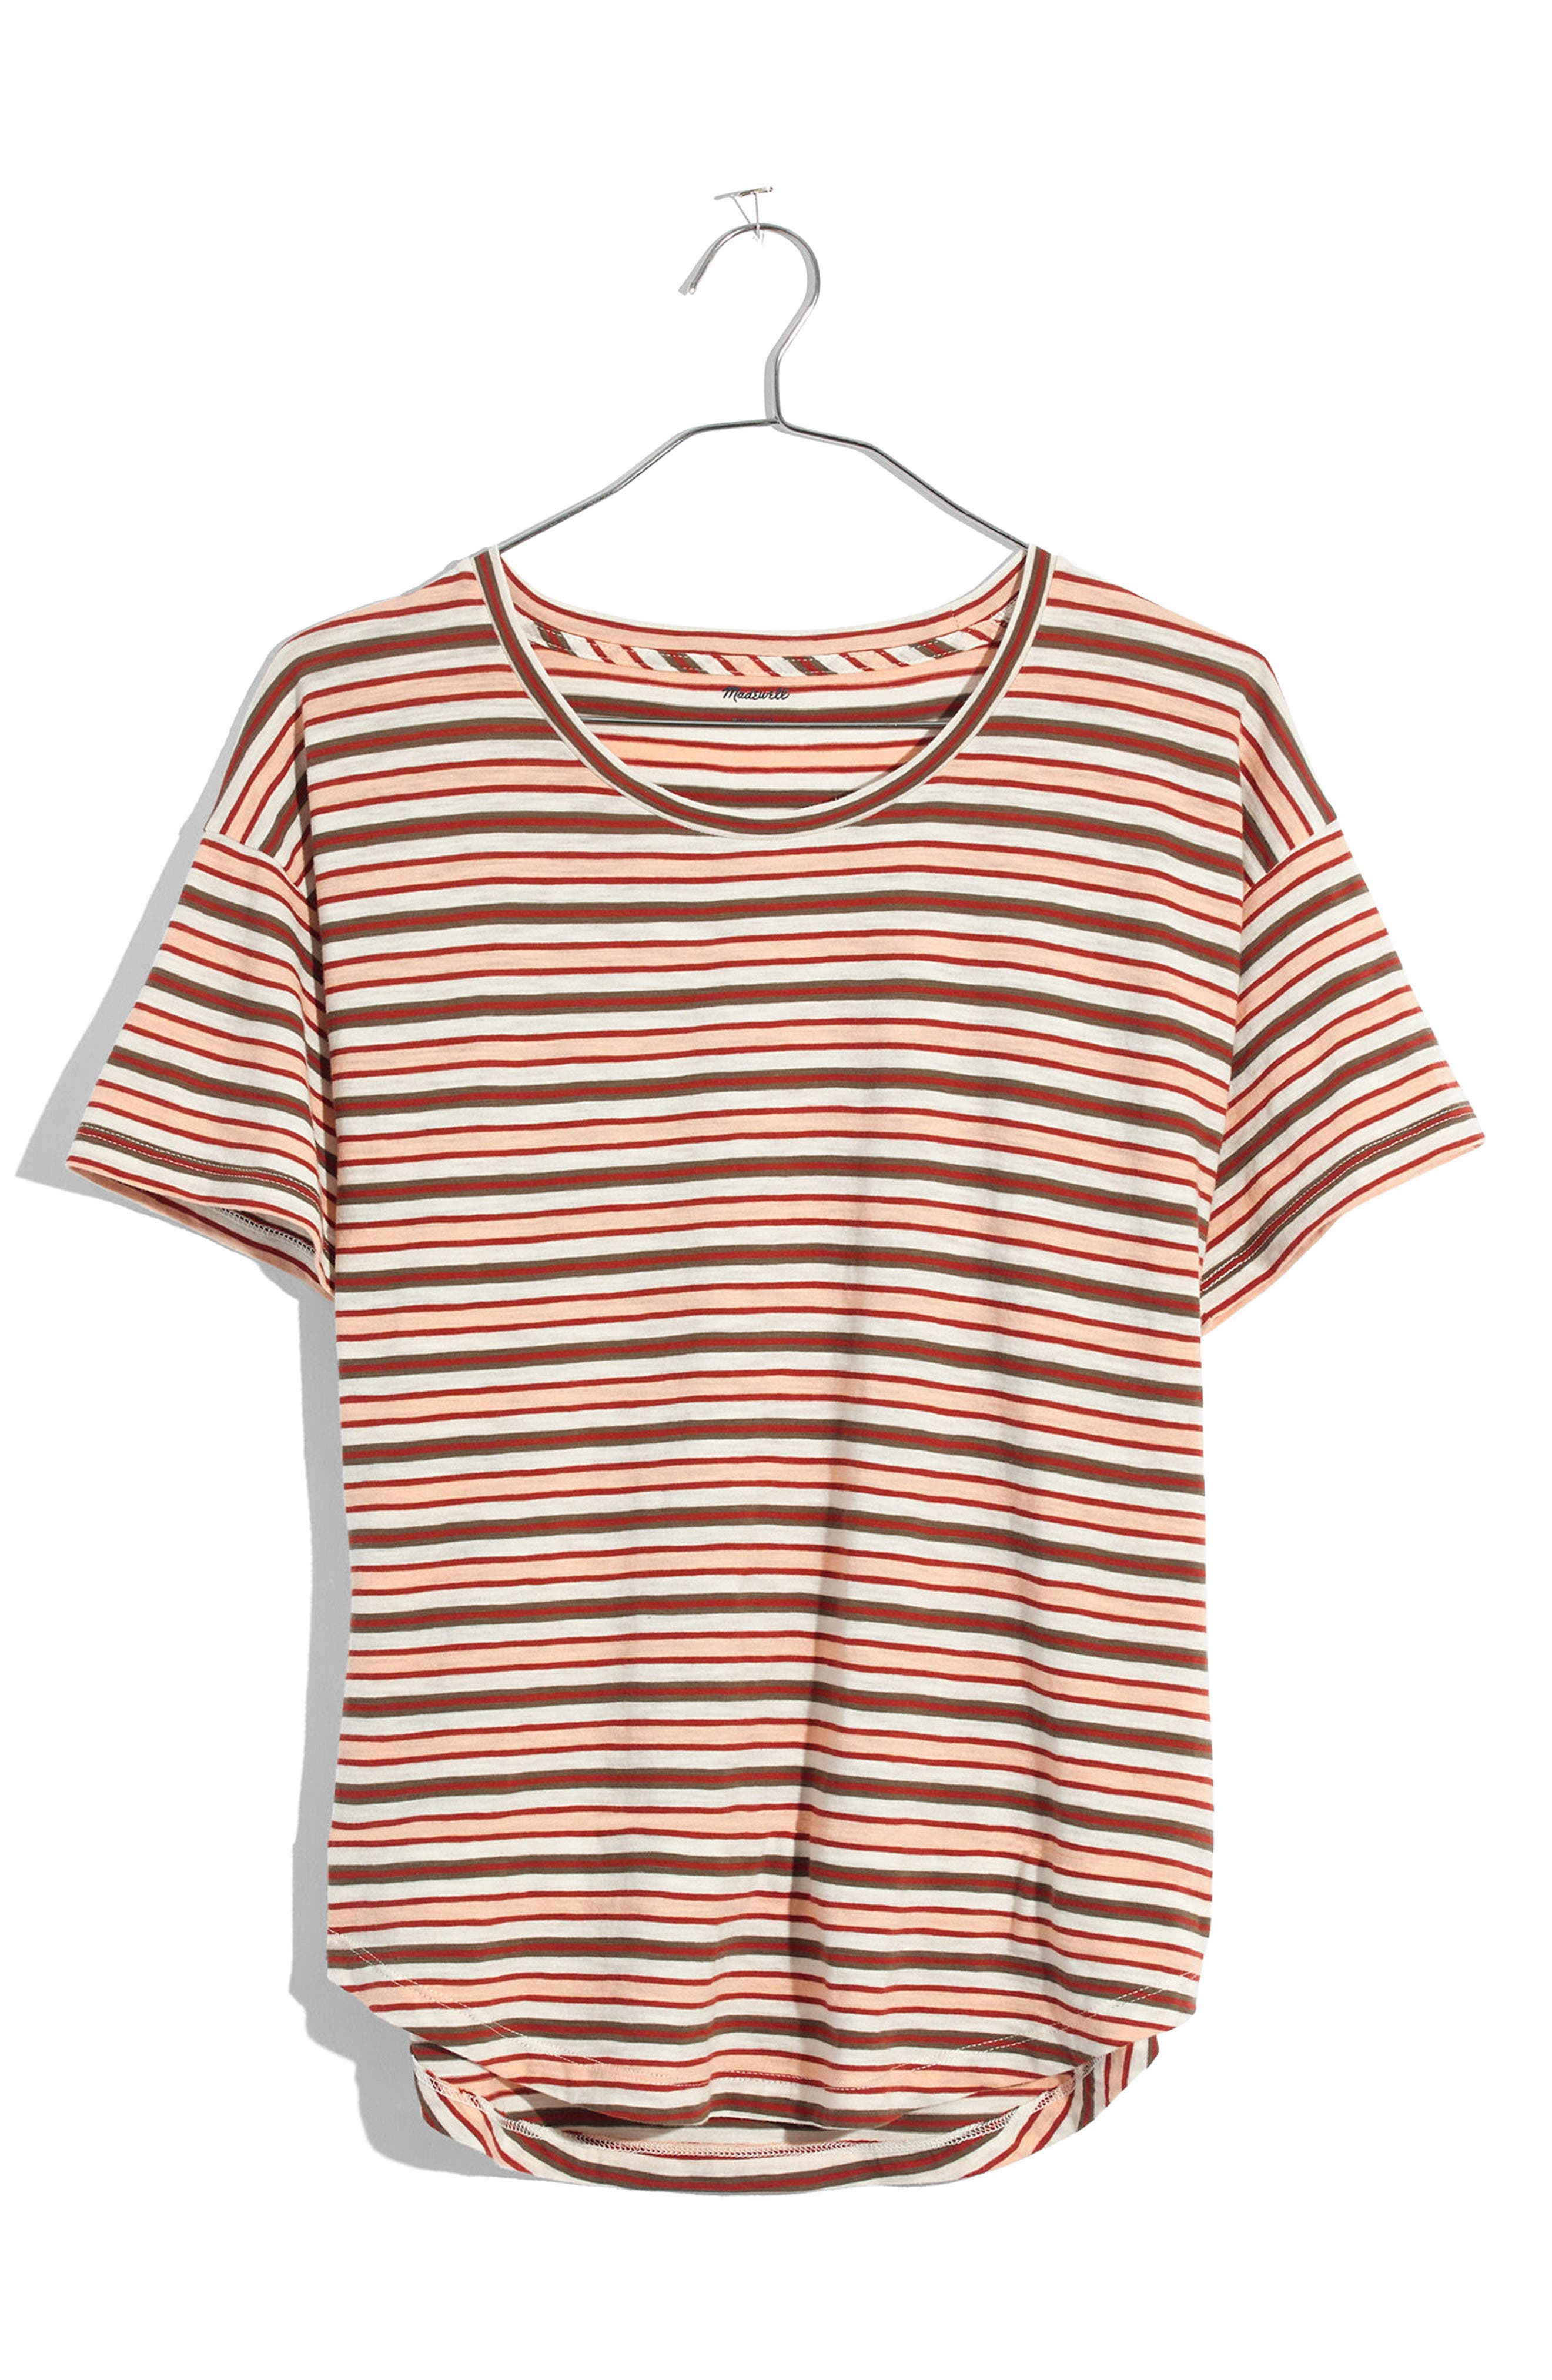 Whisper Cotton Stripe Crewneck Tee,                         Main,                         color, Muted Shell